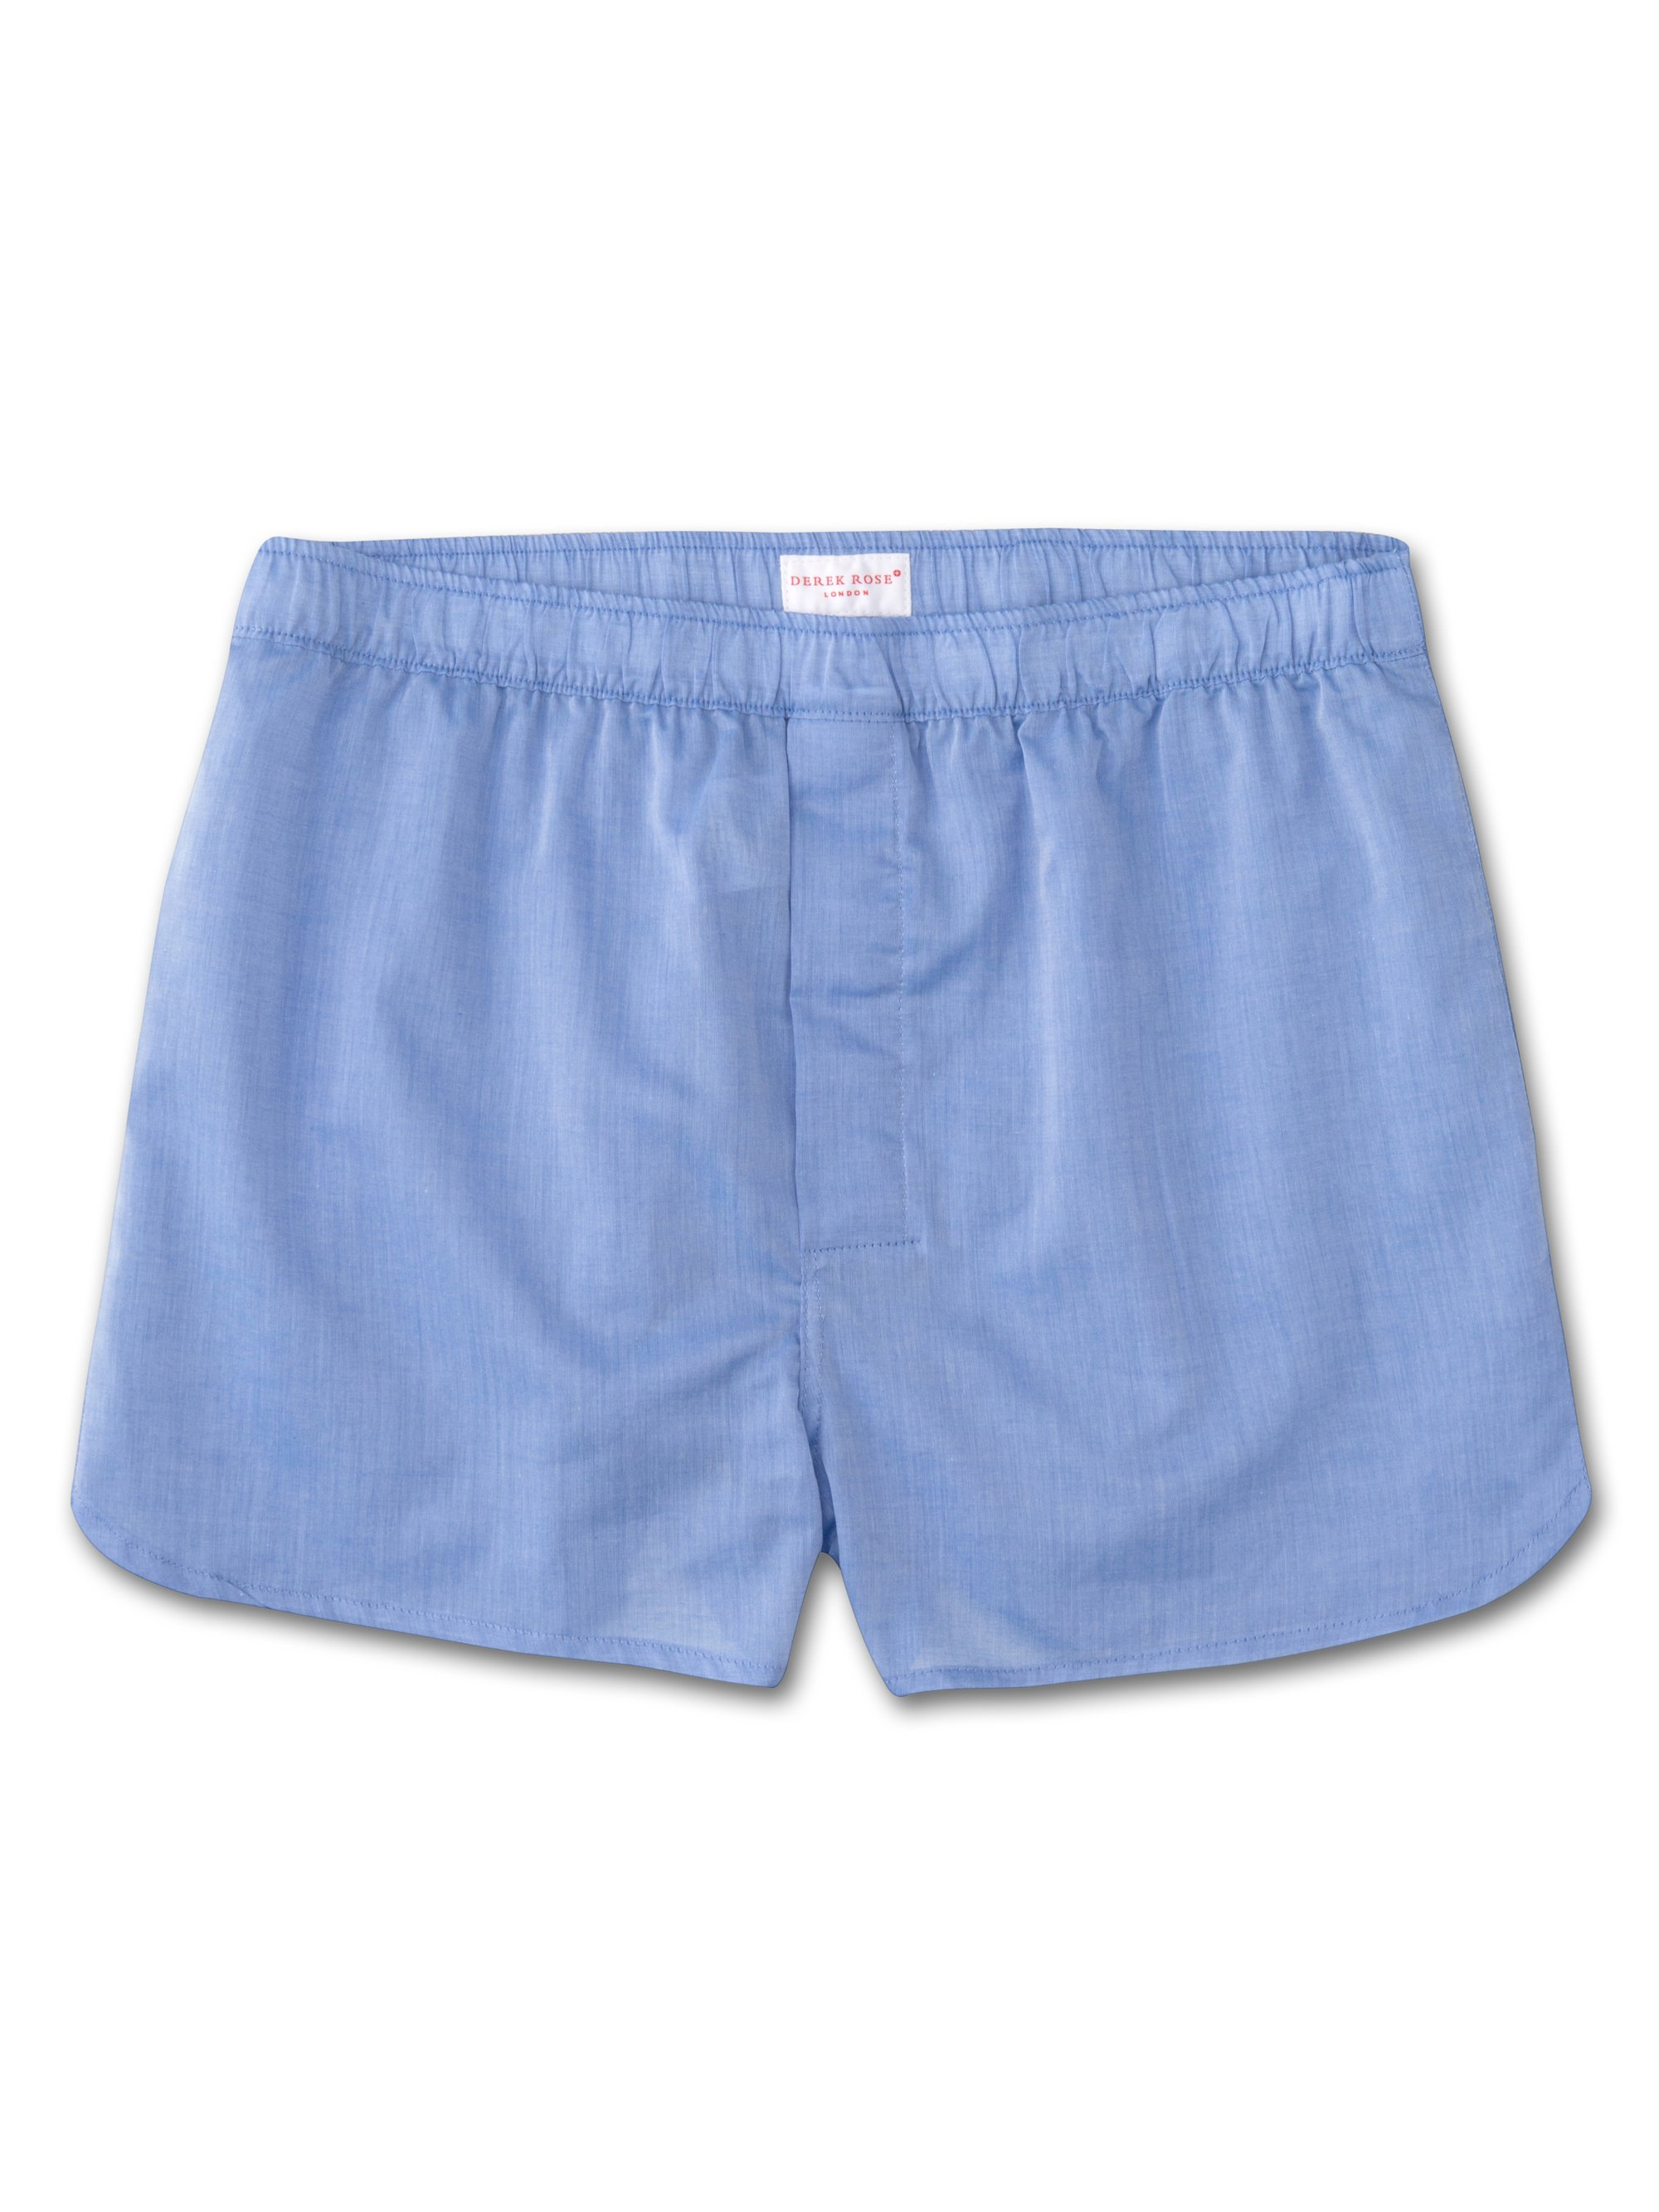 Men's Modern Fit Boxer Shorts Amalfi Pure Cotton Blue